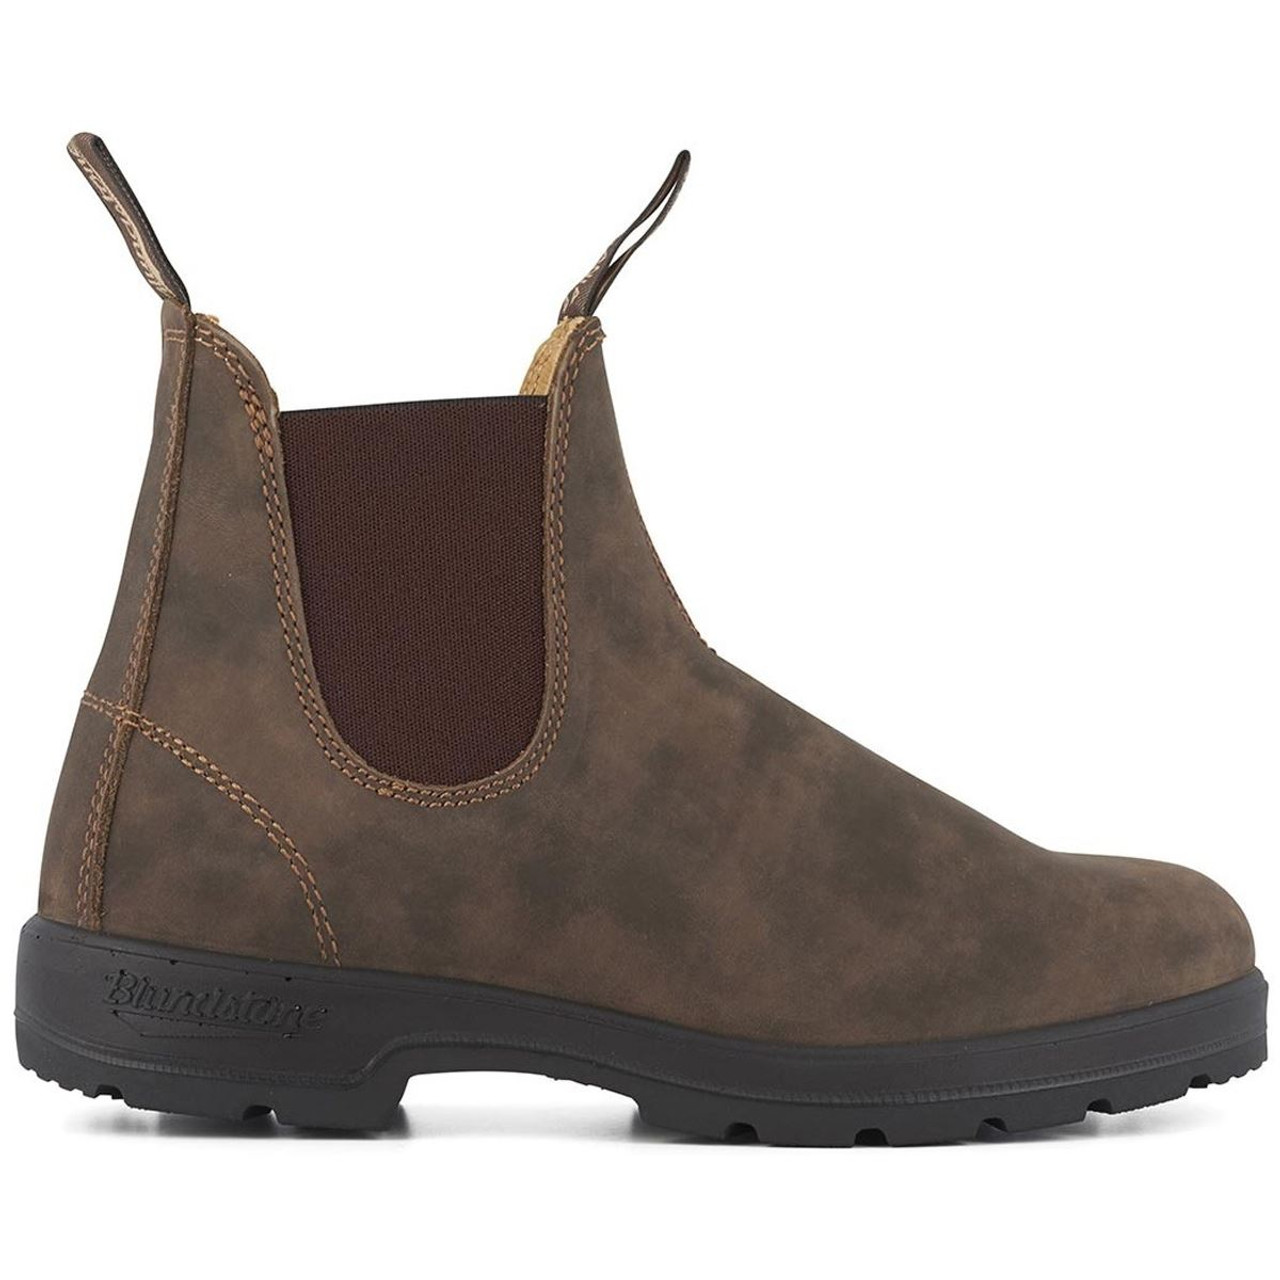 Blundstone Comfort 585 Round Toe Chelsea Boots